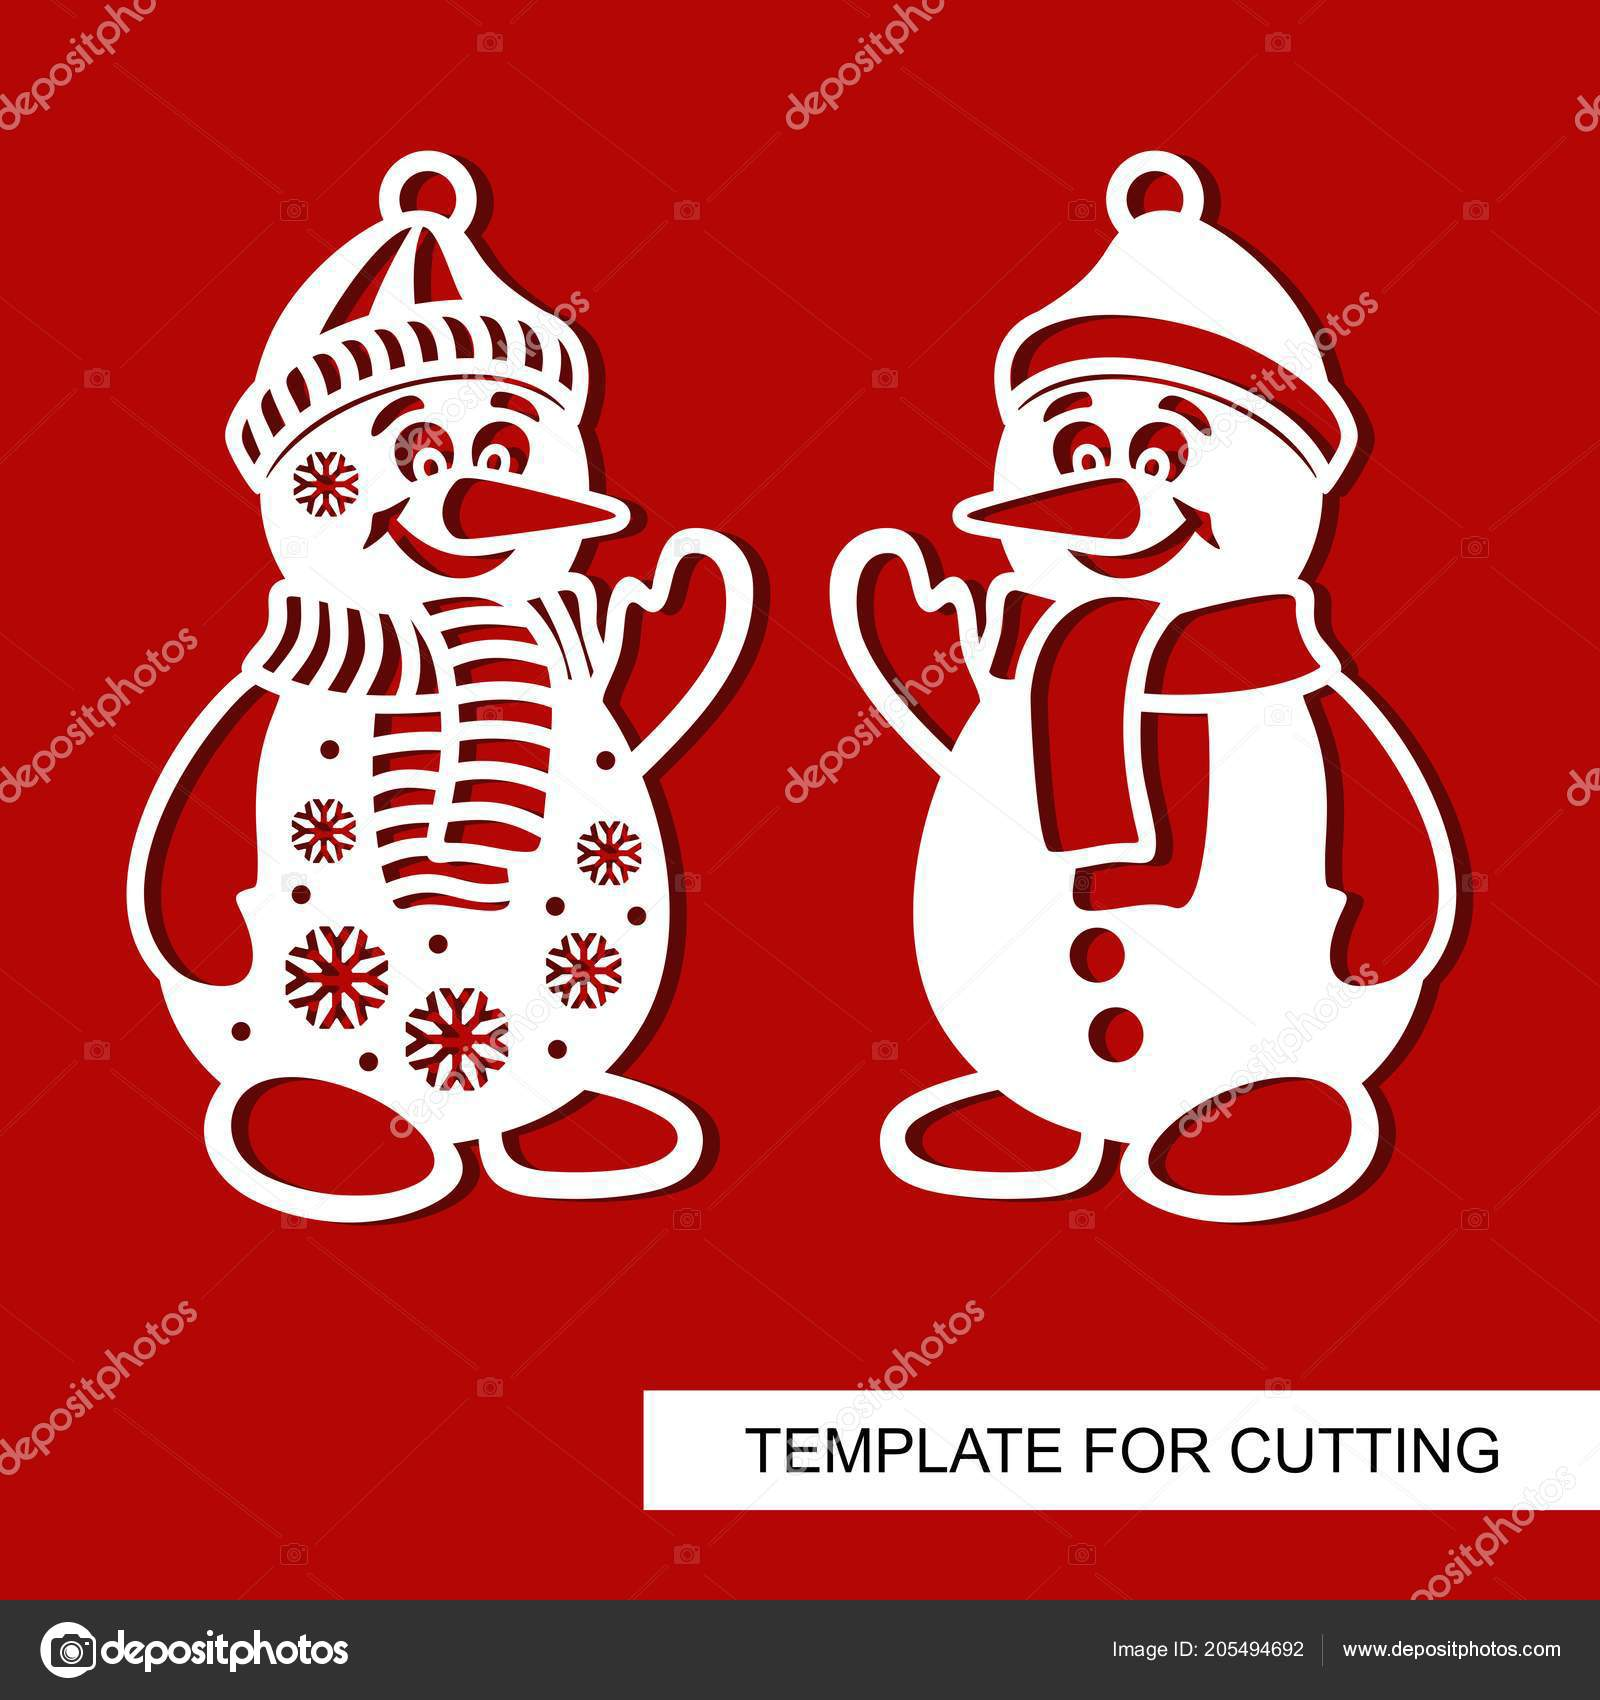 silhouette snowman templates laser cutting wood carving plotter